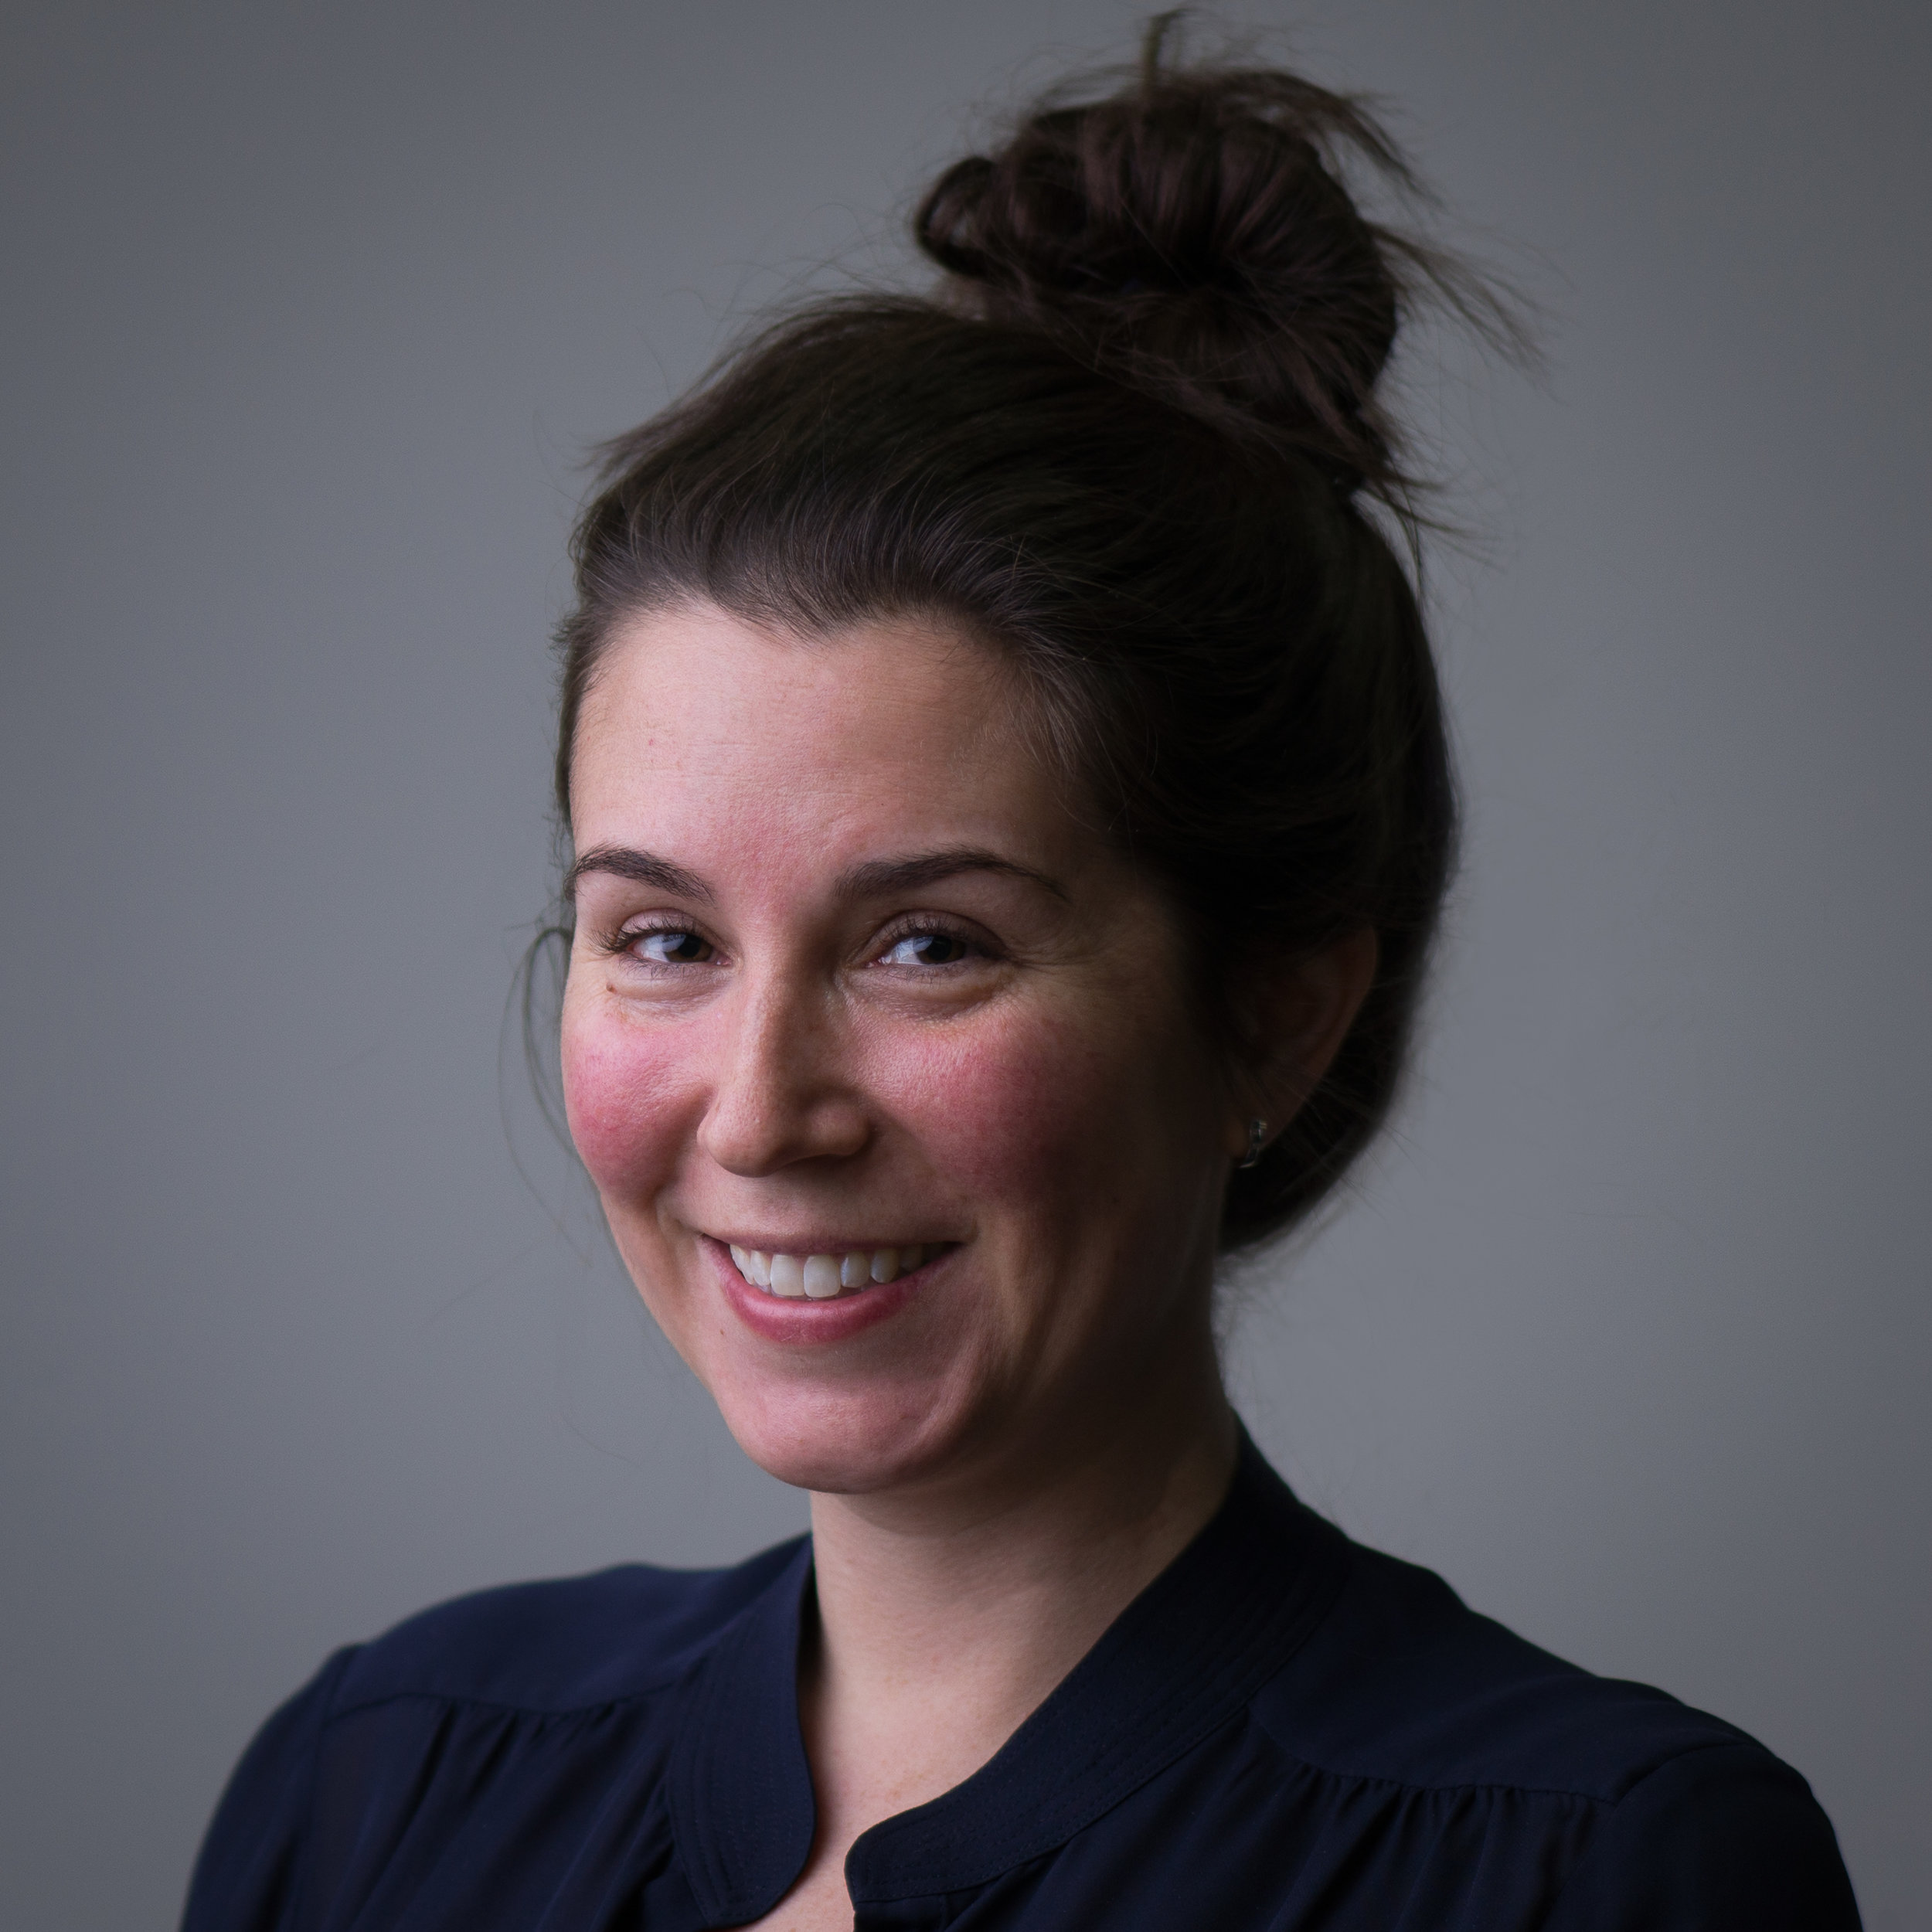 AYNSLEY DONOHUE, RM   Aynsley Donohue was born and raised in North Toronto and has been a practicing midwife since 2006. She is proud to be a founding member of Uptown Midwives and Family Wellness, located blocks from her childhood home.  Aynsley completed an undergraduate degree in Biomedical Science from the University of Guelph before graduating from McMaster's Midwifery Education Program. Aynsley also holds a Masters degree in Public Policy, Administration and Law from York University, where she focused how perception of risk impacts healthcare in both practice and policy.  Aynsley is a compassionate clinician and advocate for increased access to evidenced based, patient-centred midwifery care for all parents and babies. She is also a mom to four adorable kids and wife to an extraordinarily patient man.